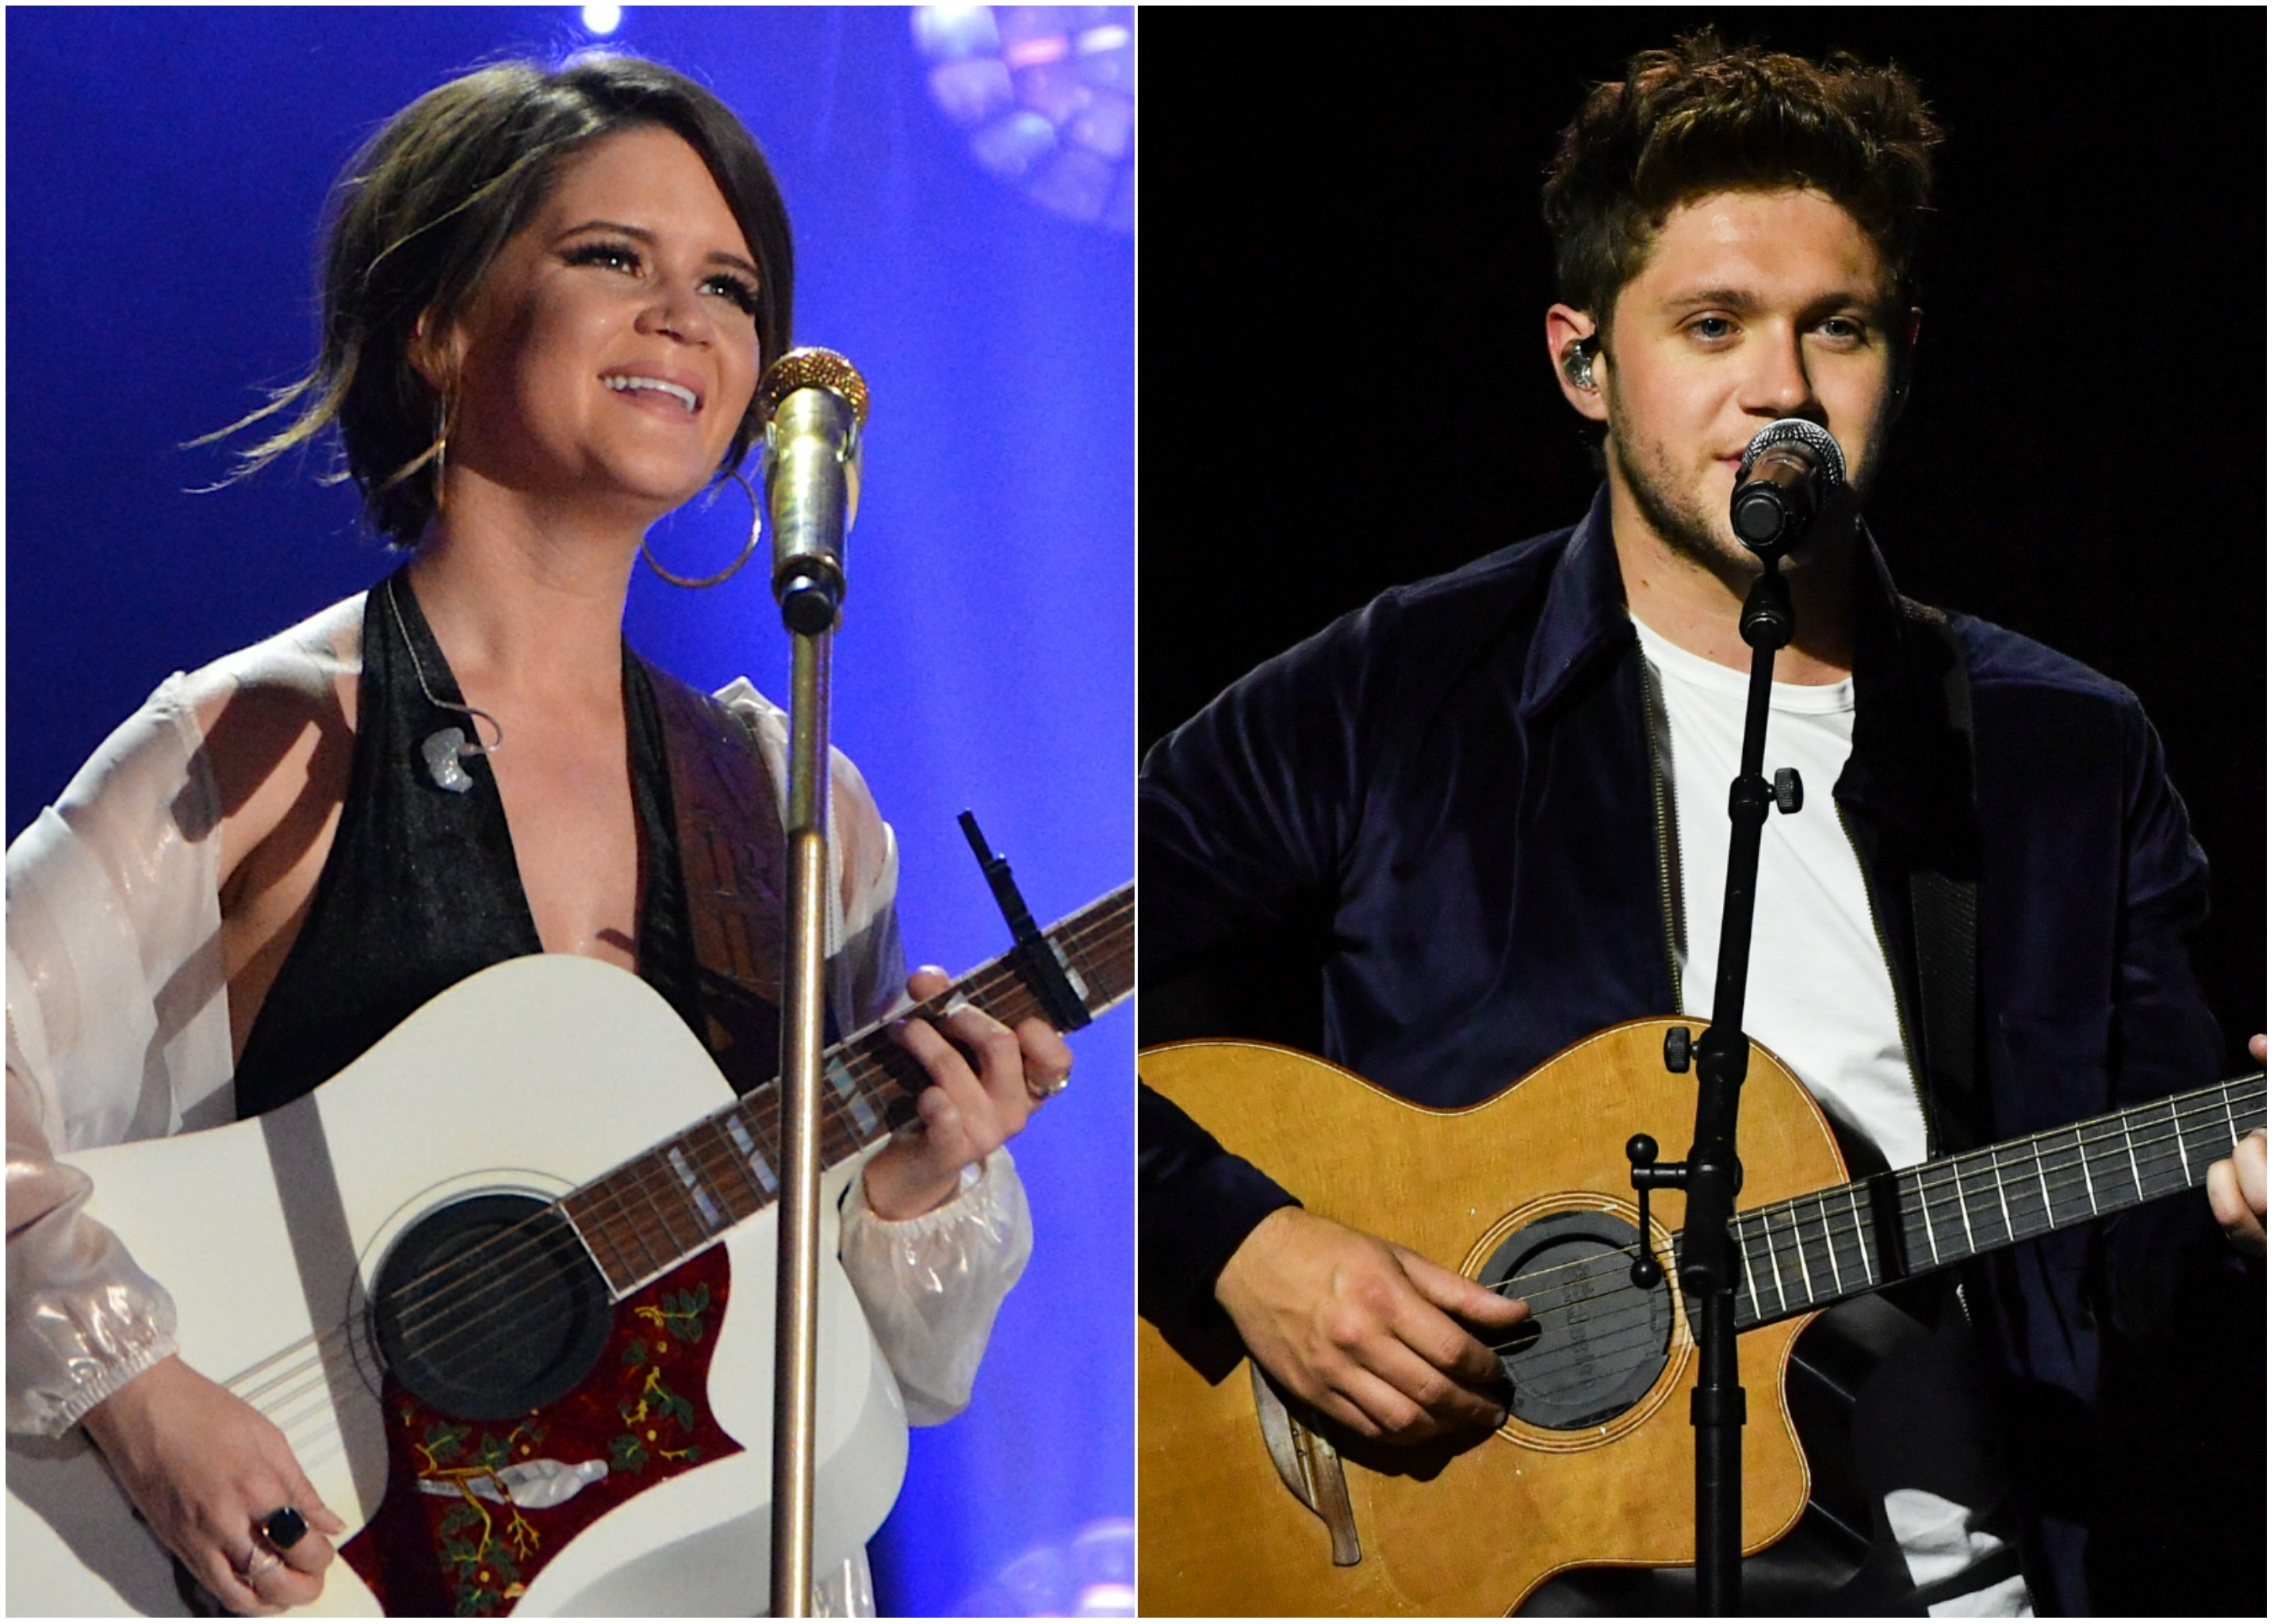 Niall Horan debuts duet with stunning country music star